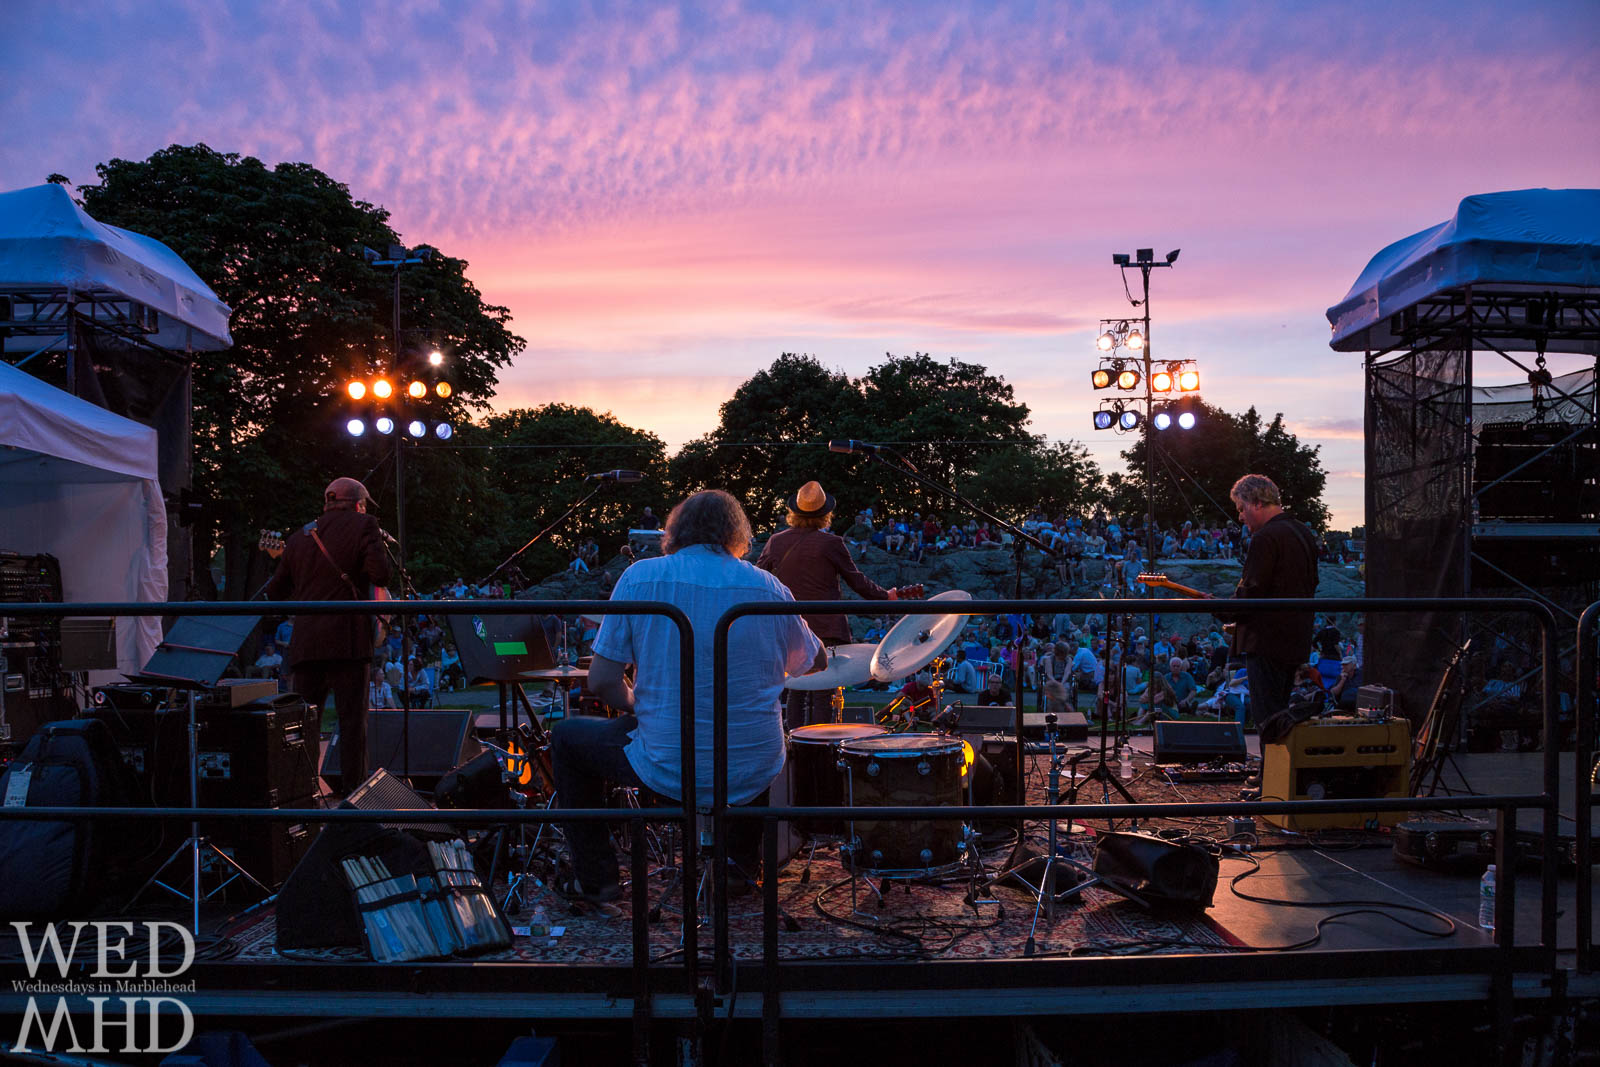 The Annual Marblehead Festival of Arts features nightly concerts at Crocker Park